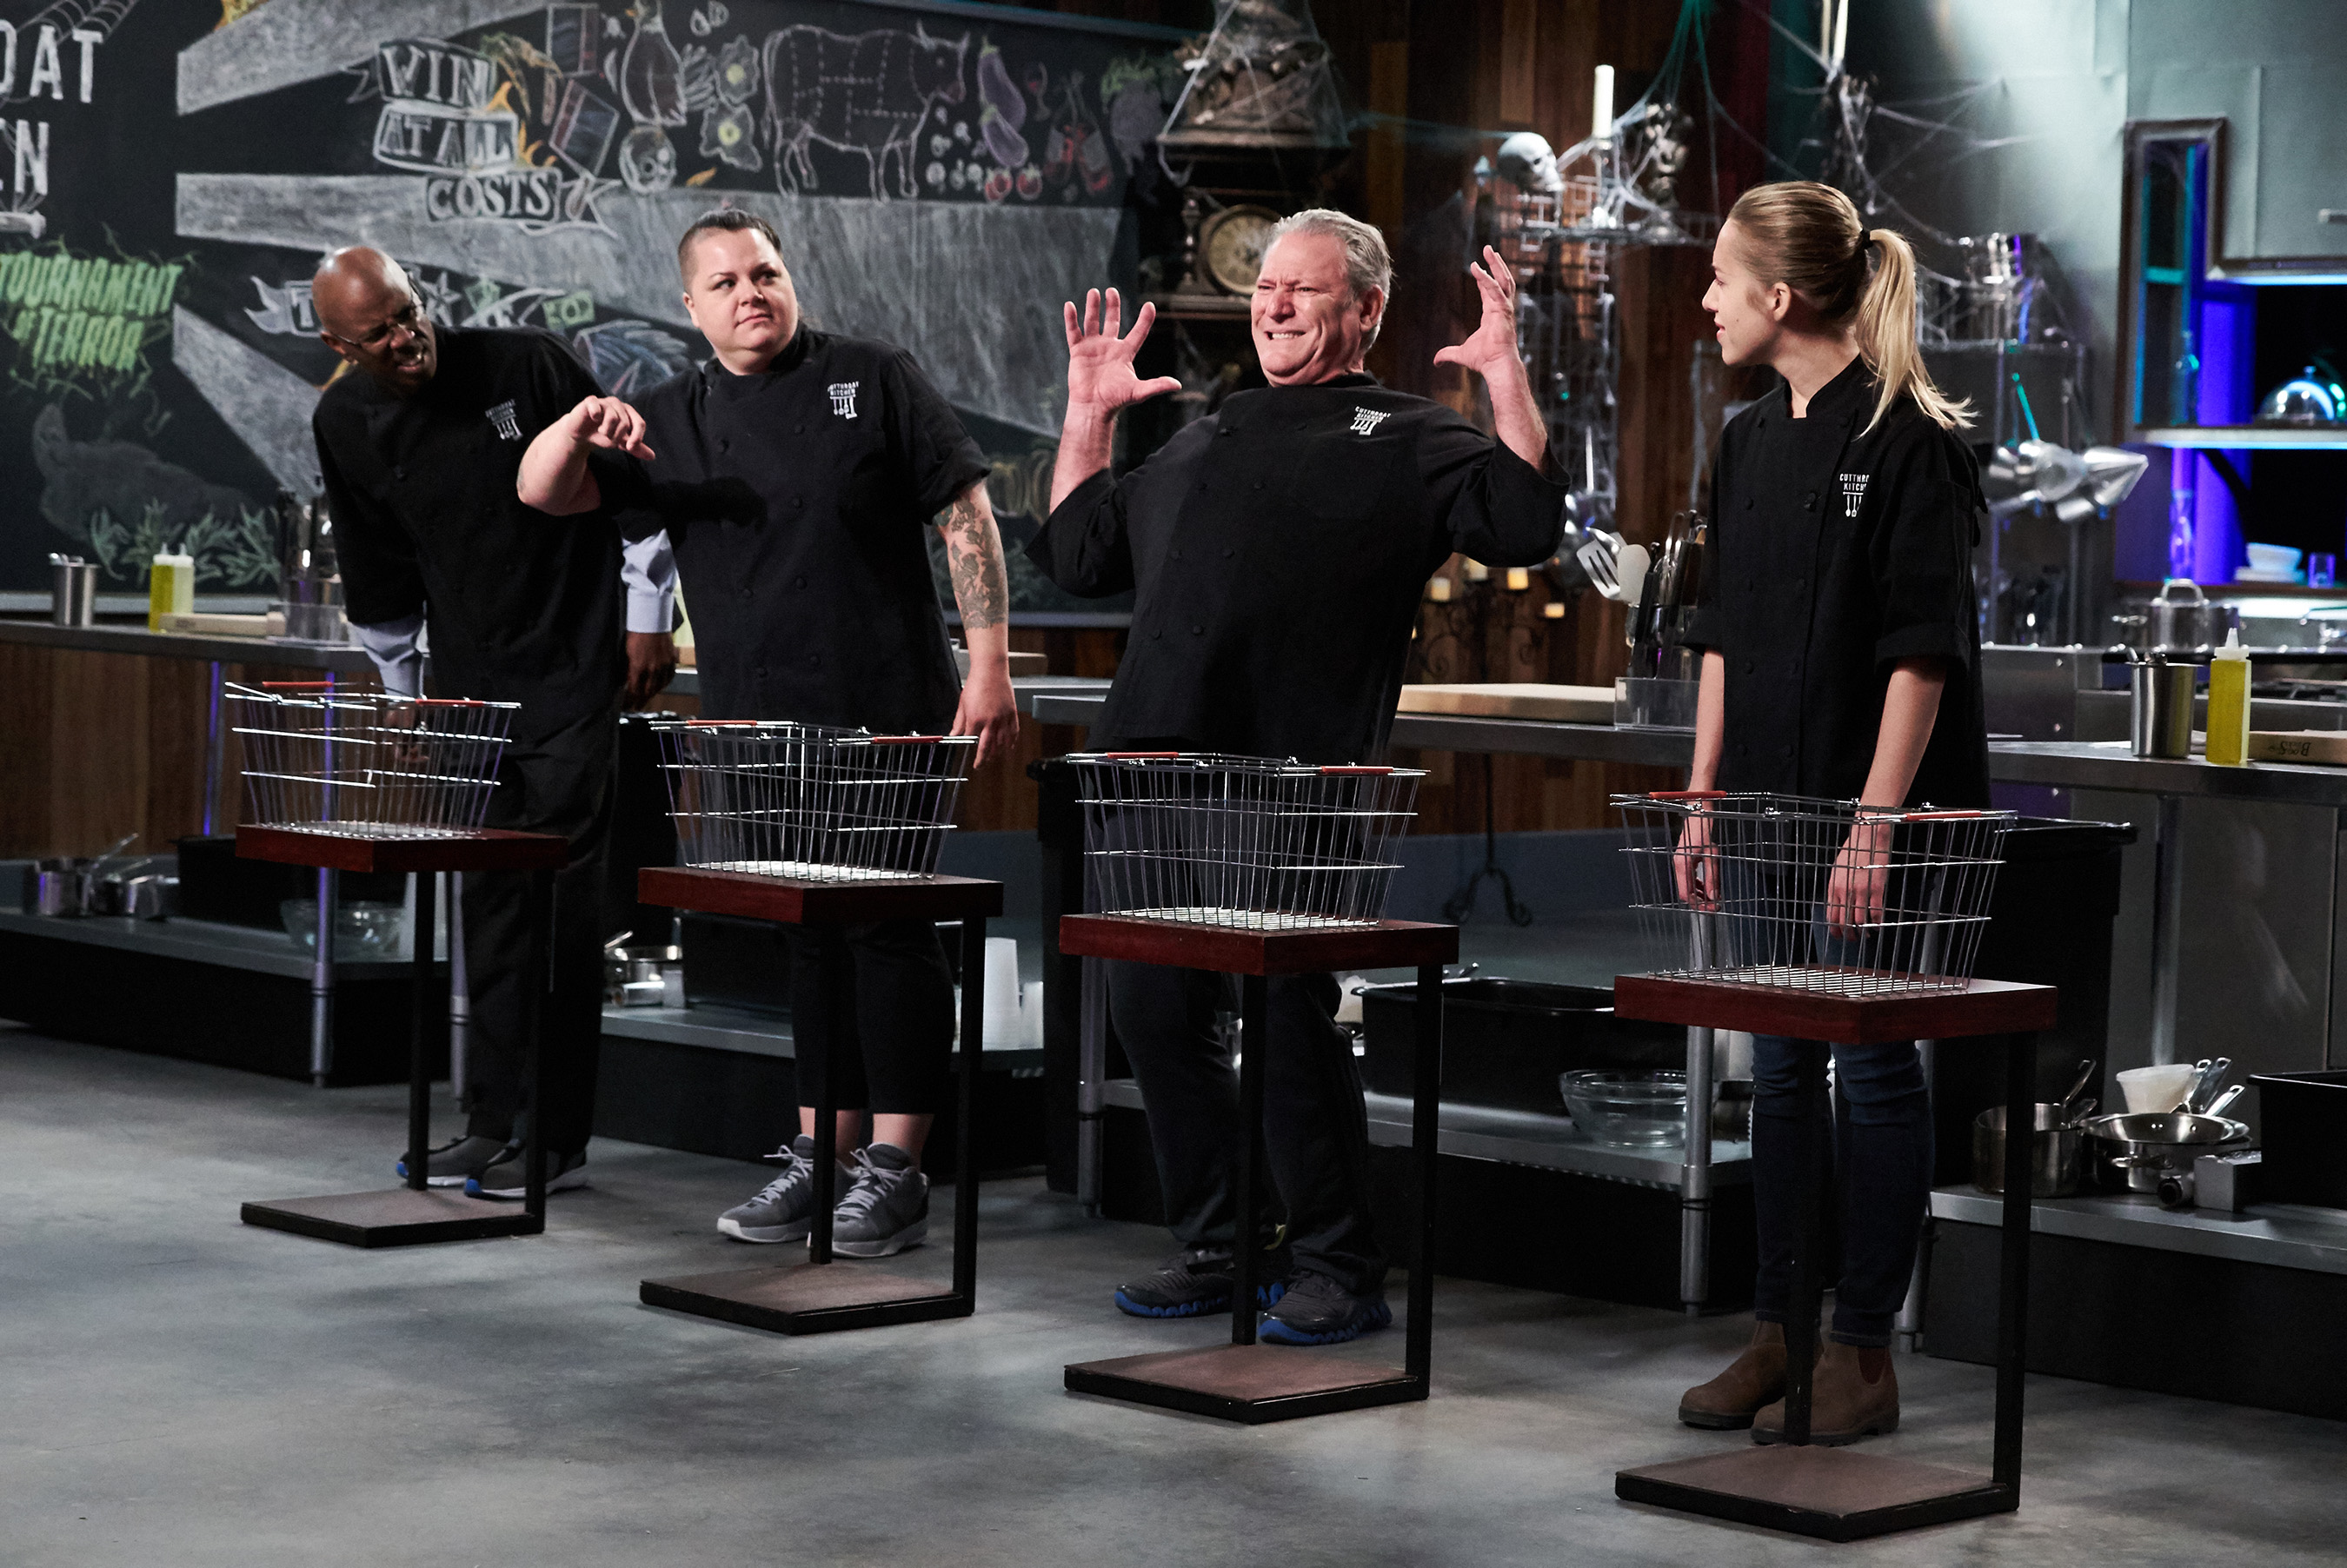 Contestants Ian Russell, Josephine Proul, Paul Friedman and Natalie Beck on Food Network's Cutthroat Kitchen: Tournament of Terror